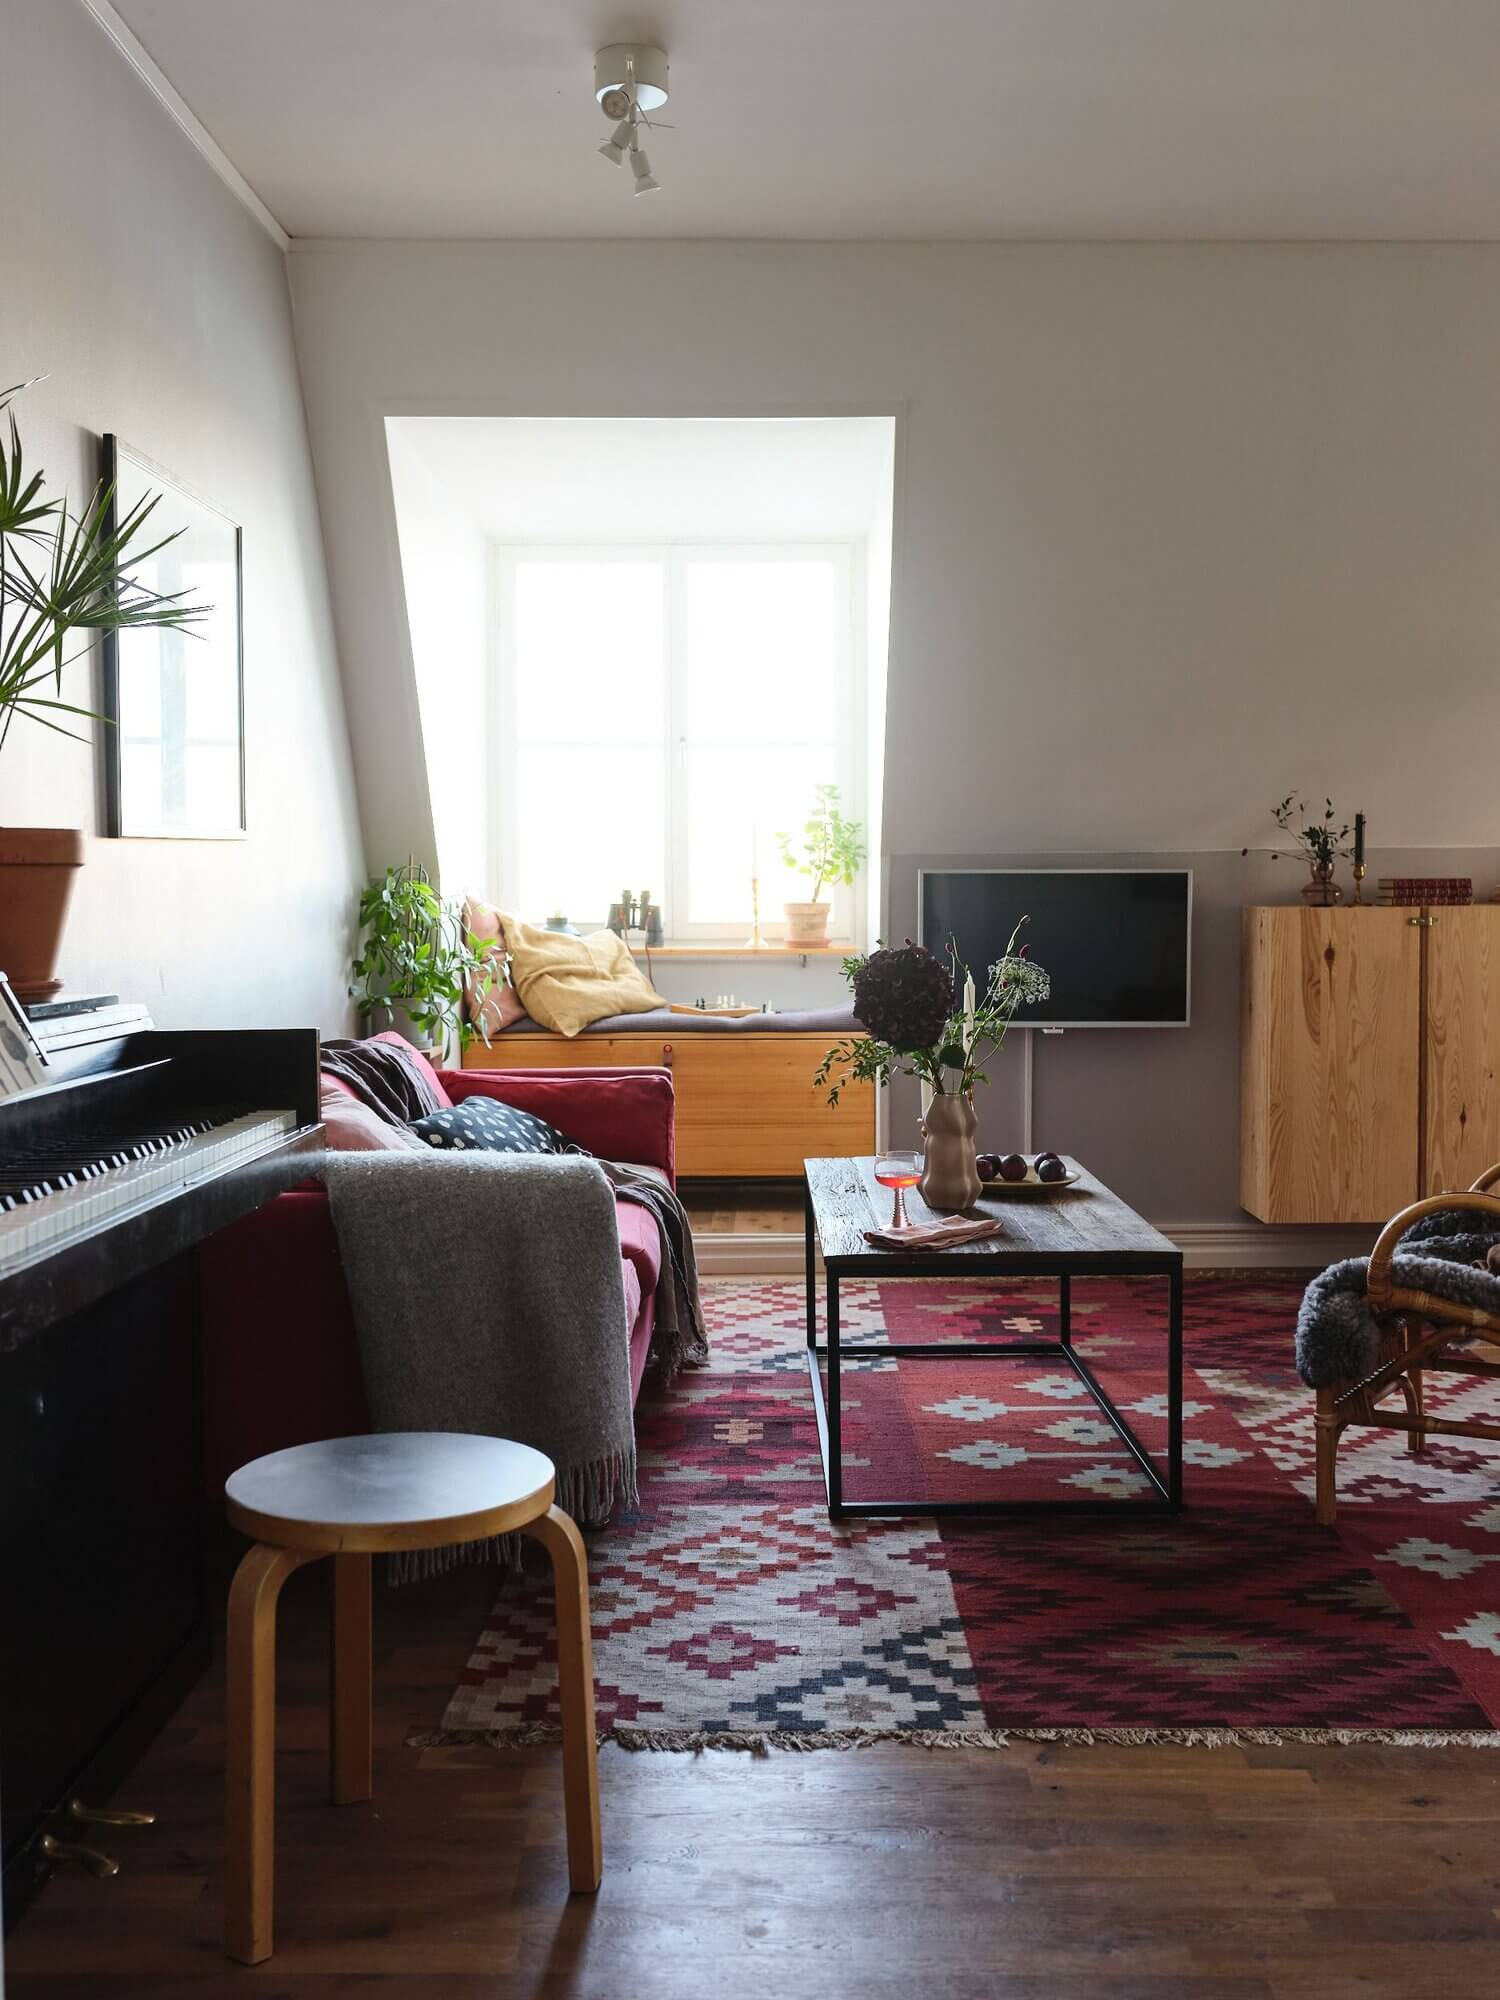 A Cozy Scandinavian Attic Apartment With Canal Views